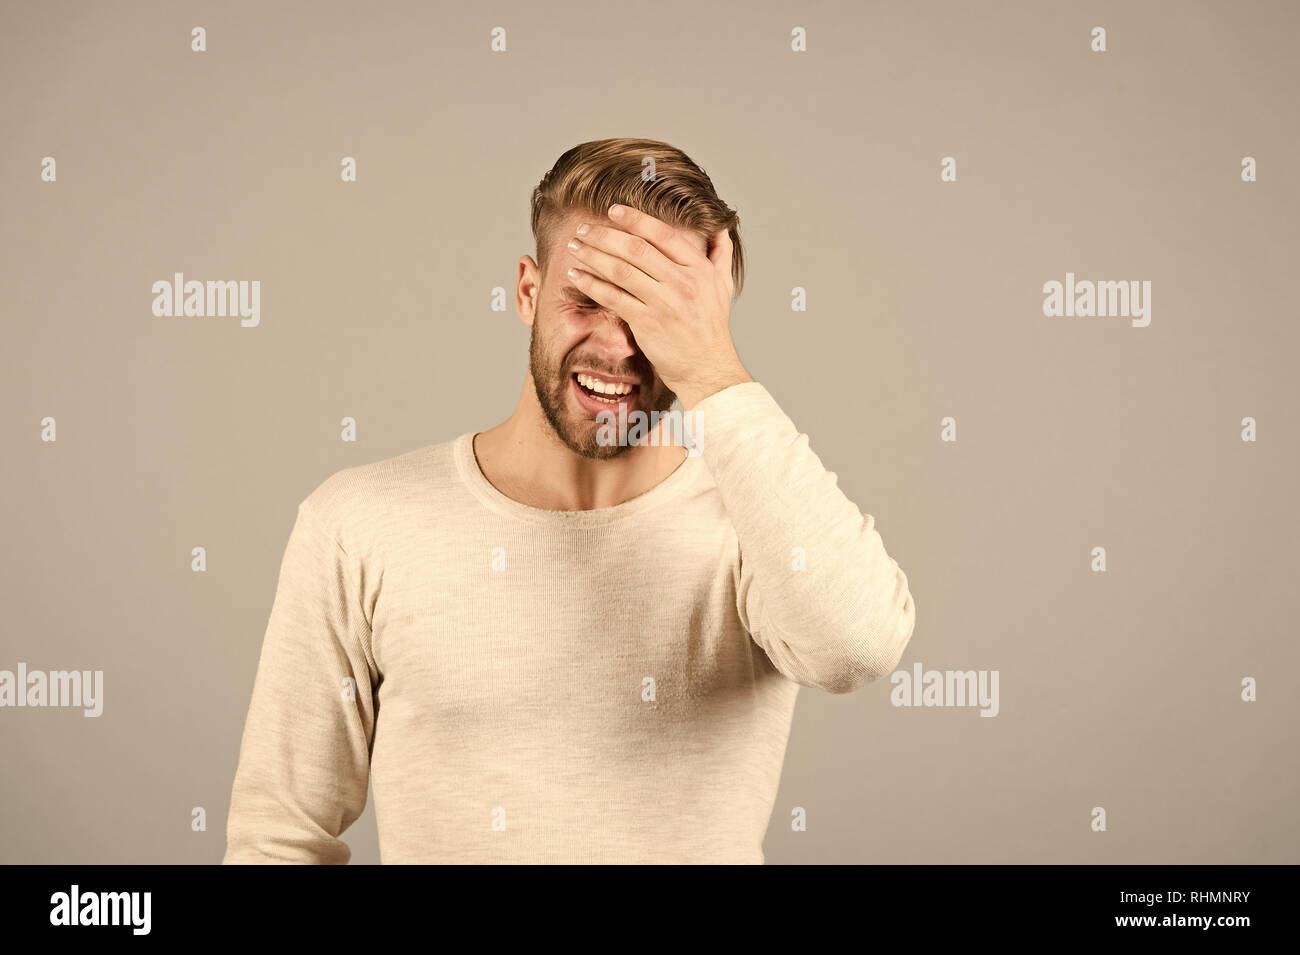 Bad memory concept. Man bearded forgetful face, grey background. Man with beard unshaven guy looks forgetfully and disapponted. Guy bearded attractive with hairstyle forgetful expression, copy space. - Stock Image